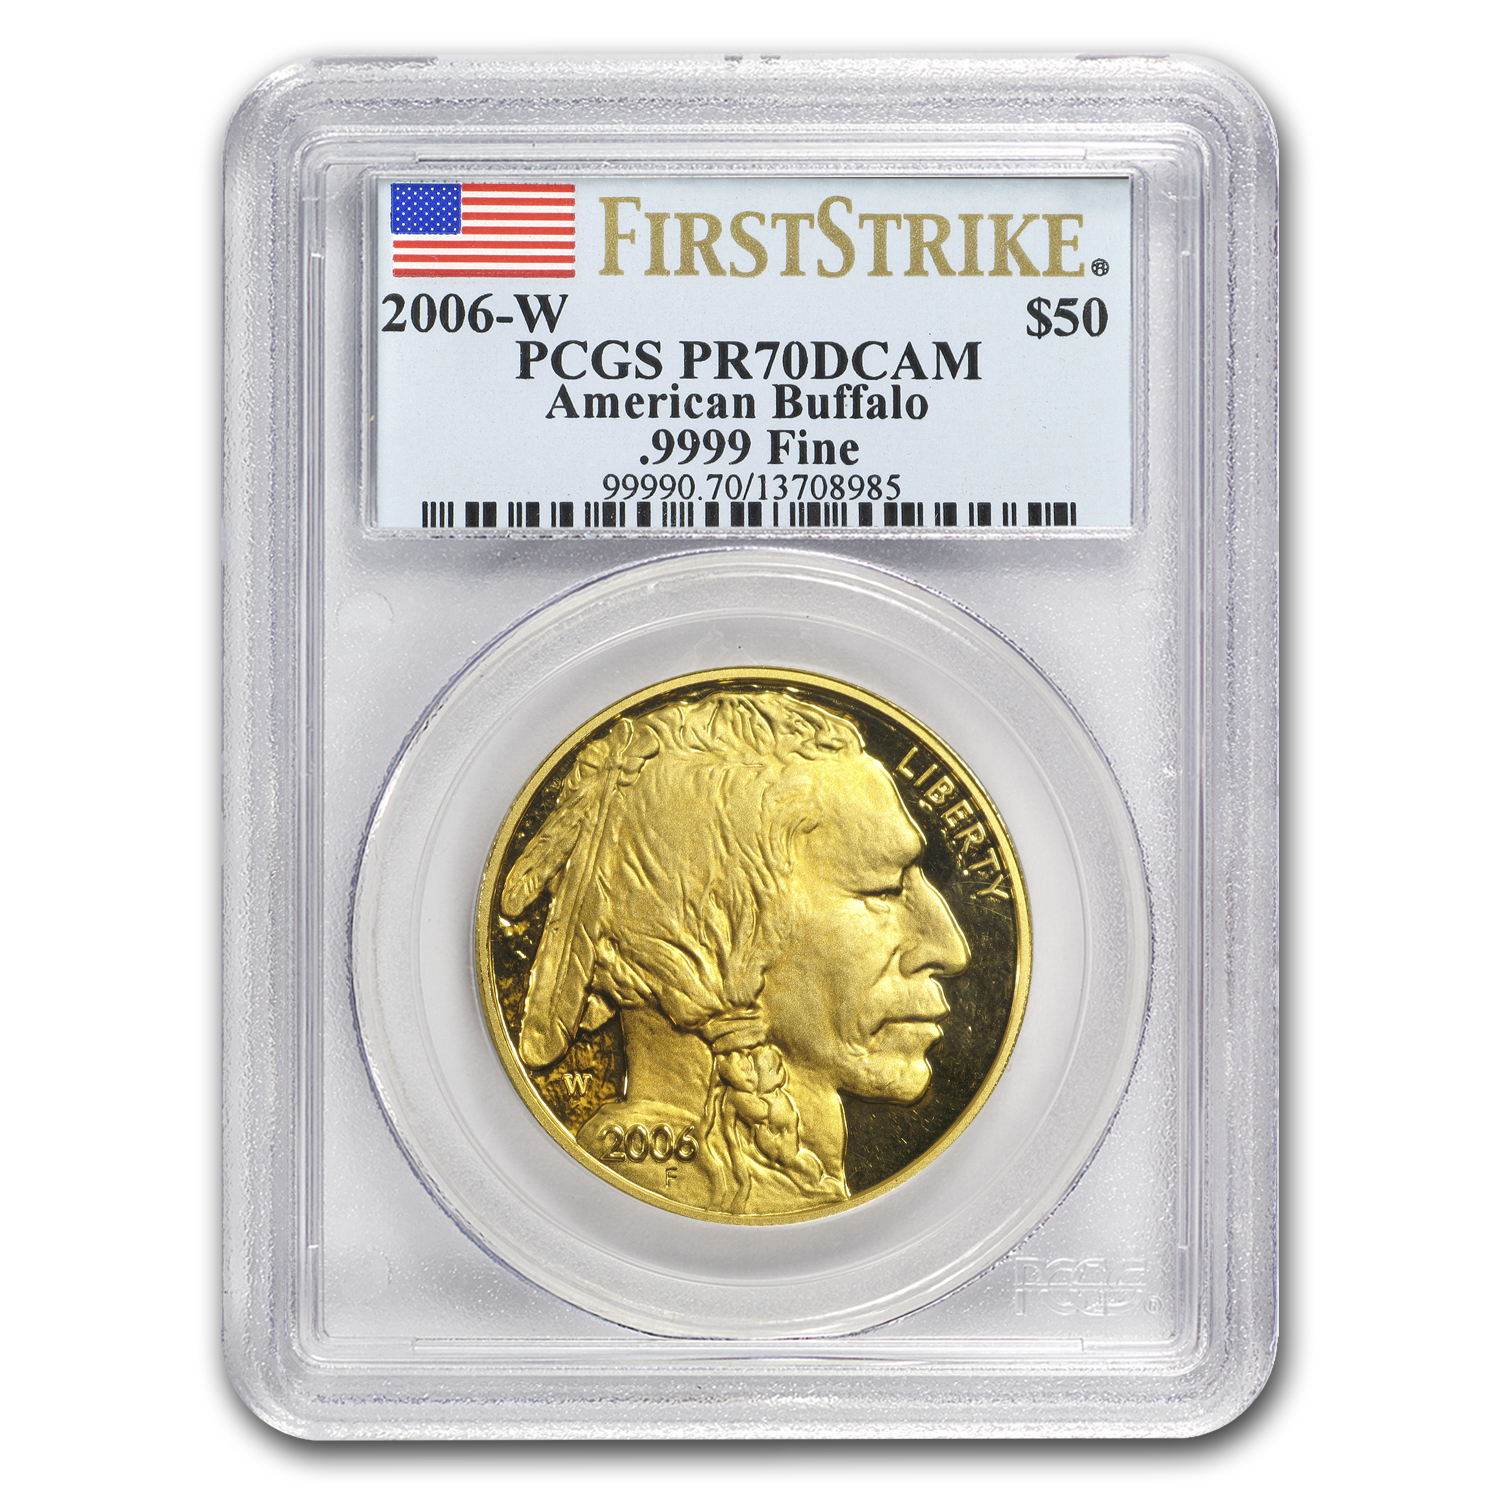 2006-W 1 oz Proof Gold Buffalo PR-70 PCGS - First Strike